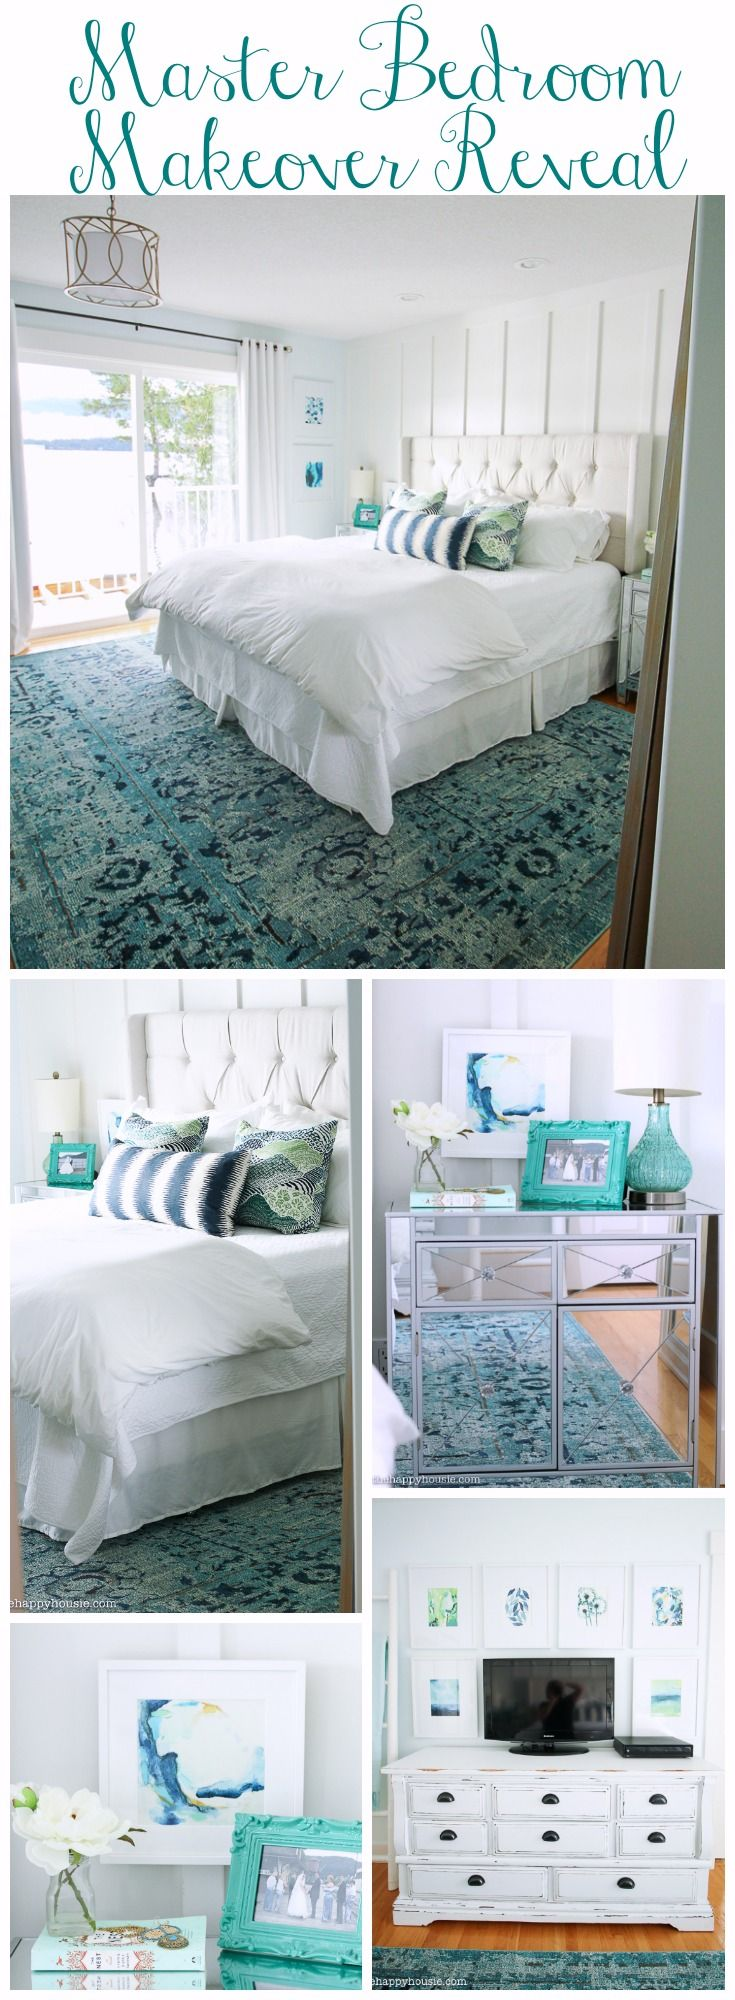 Beautiful painted master bedrooms - Master Bedroom Makeover Reveal A 250 Minted Giveaway